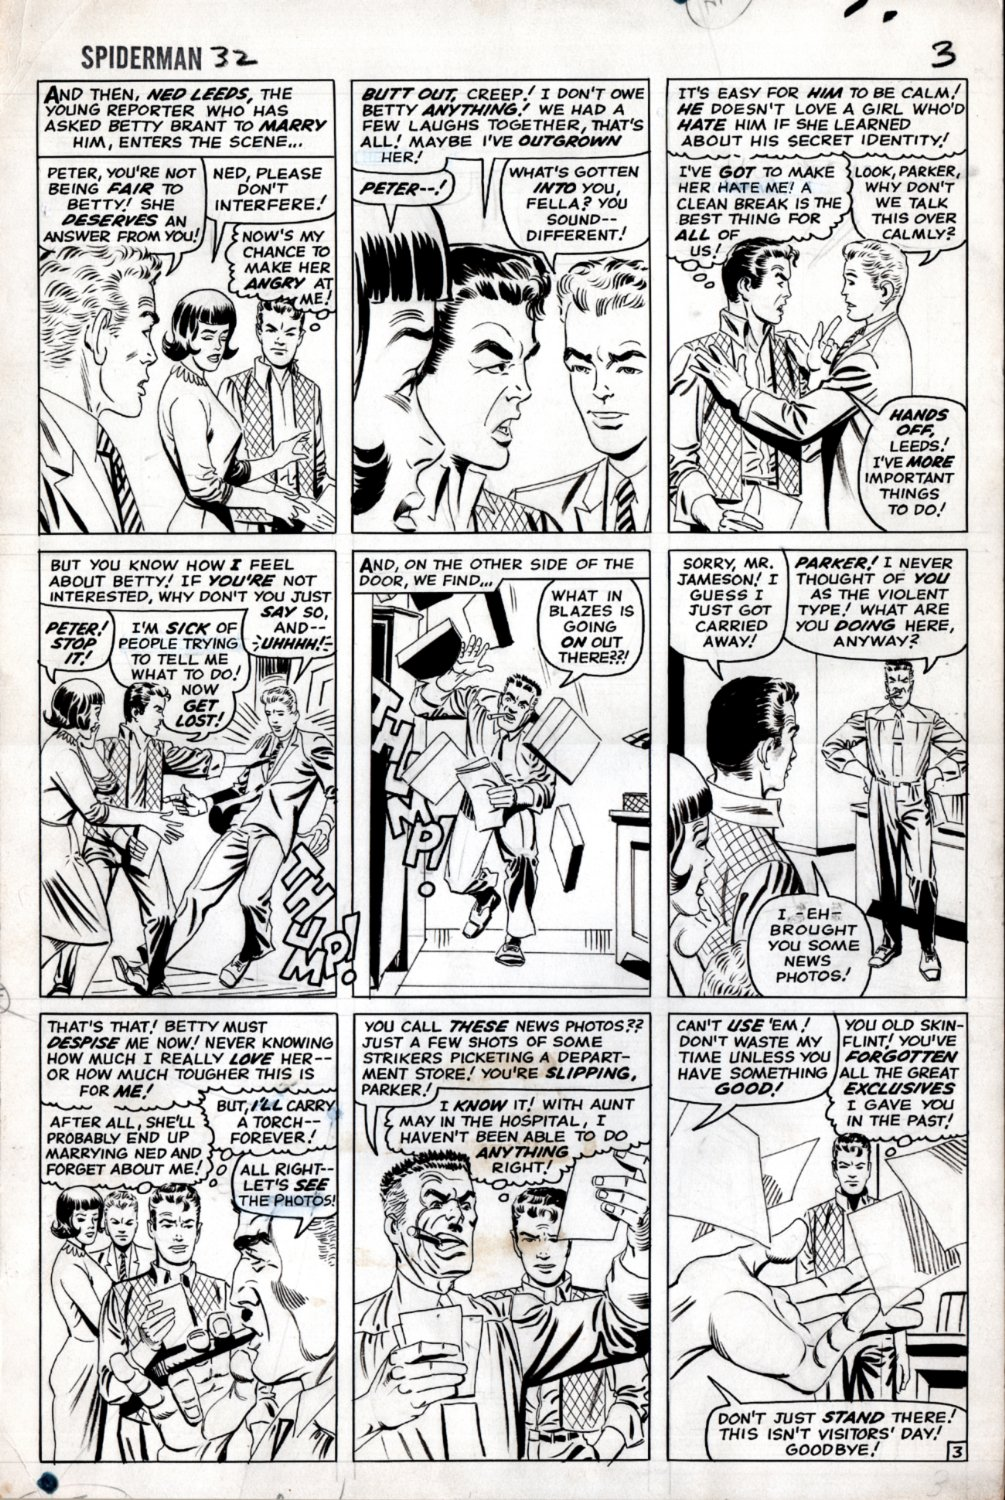 Amazing Spider-Man #32 p 3 (Peter Parker, Betty Brant, Ned Leeds, J. Jonah Jameson In ALL PANELS!) Large Art - 1965